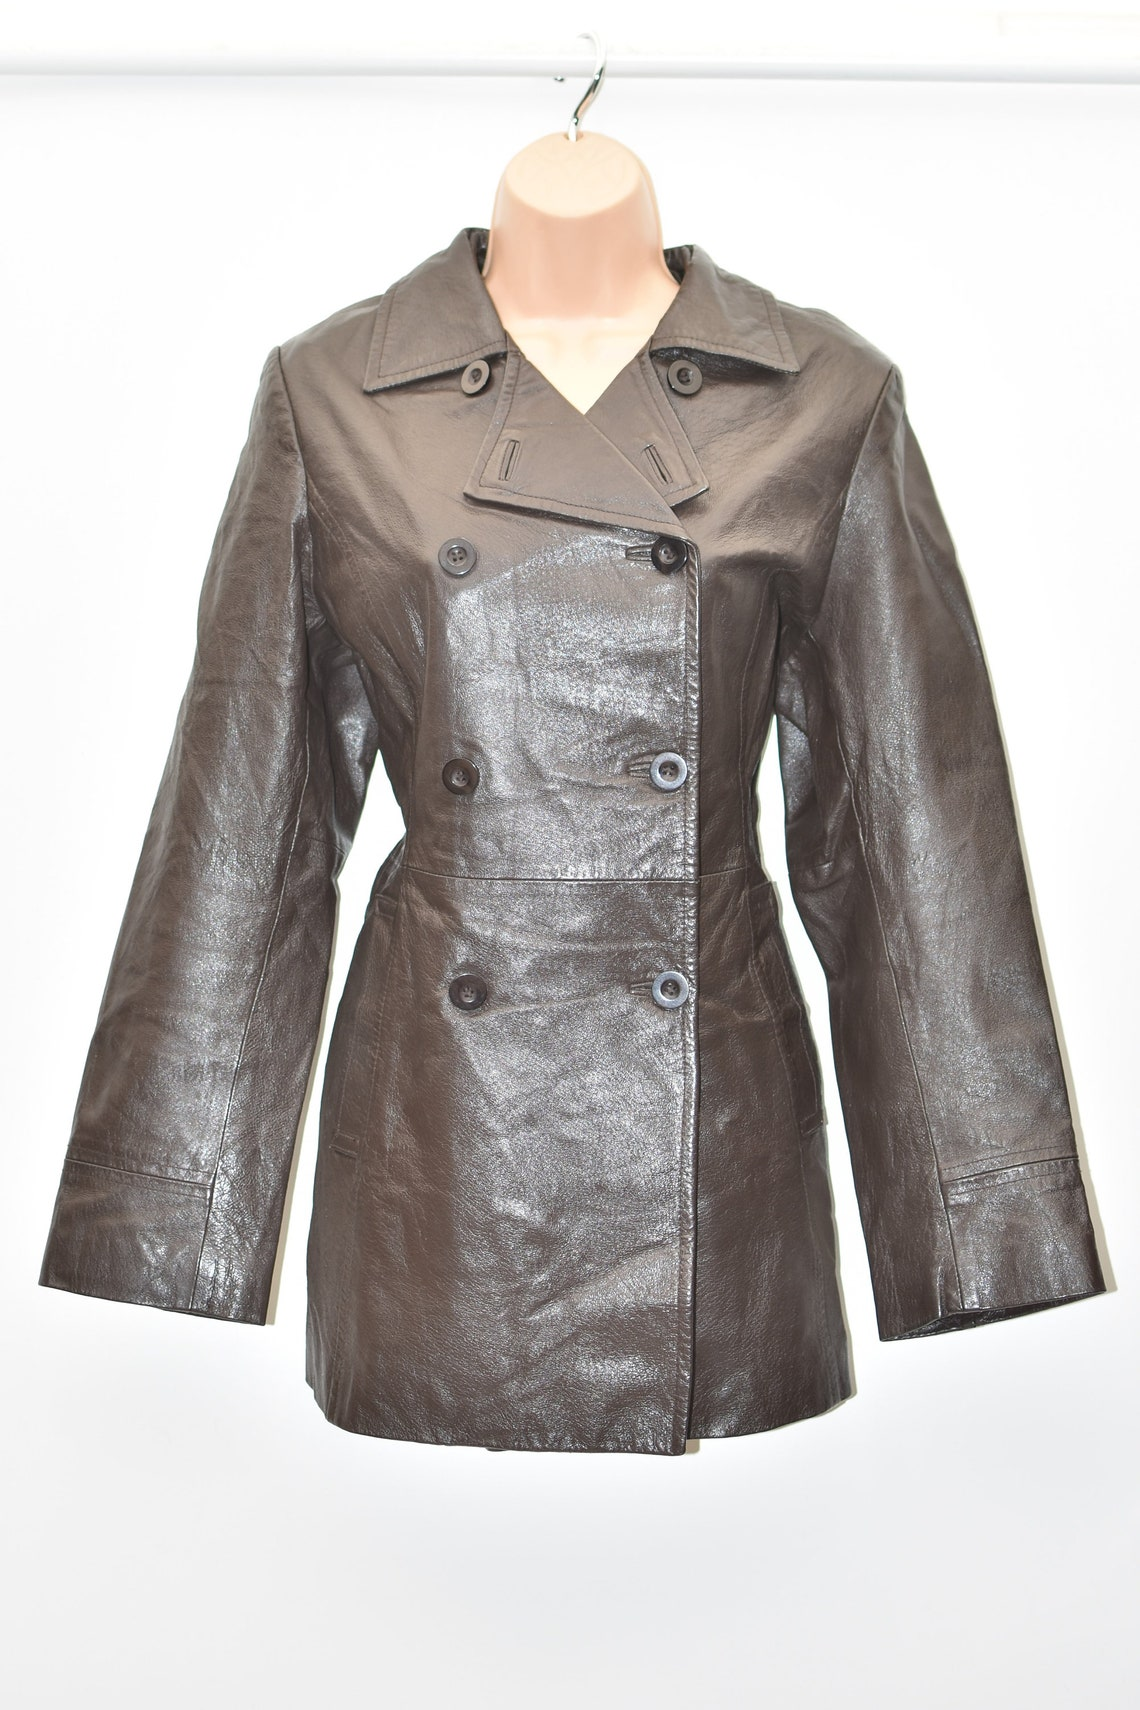 Vintage Brown Genuine Leather Authentic Military Biker Hips Length Double Breasted Women's Coat Jacket Size Uk14 Us10